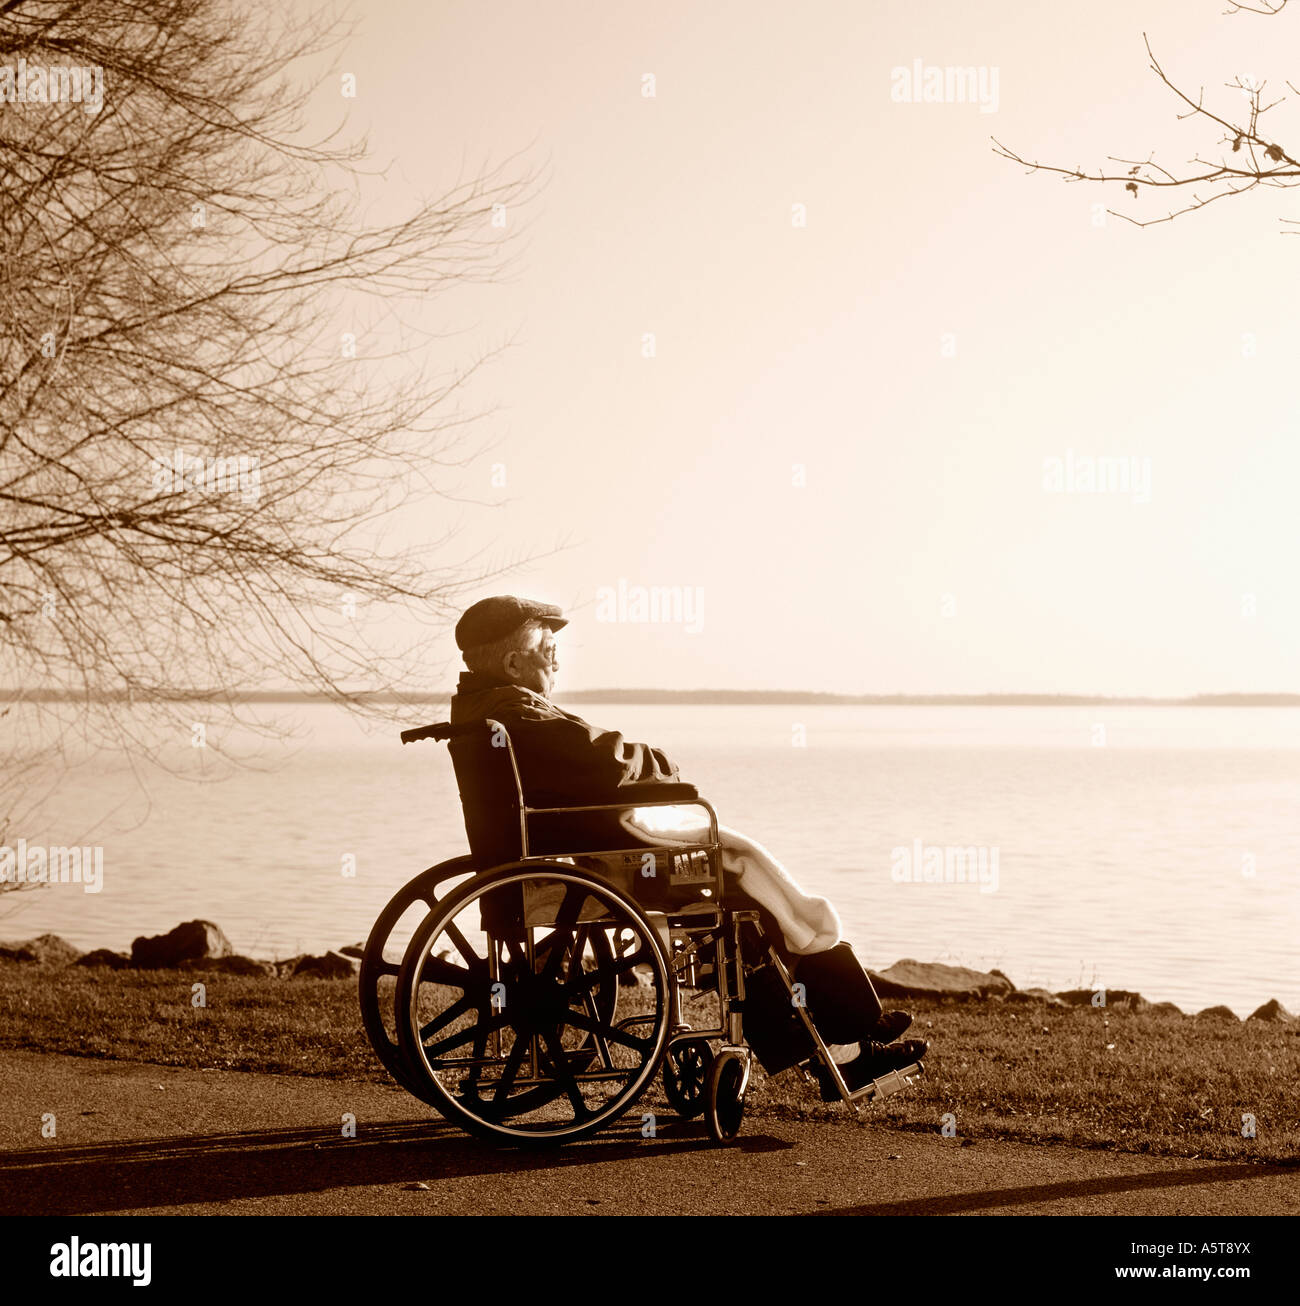 Elderly Man on a Wheelchair by the Lakeside - Stock Image